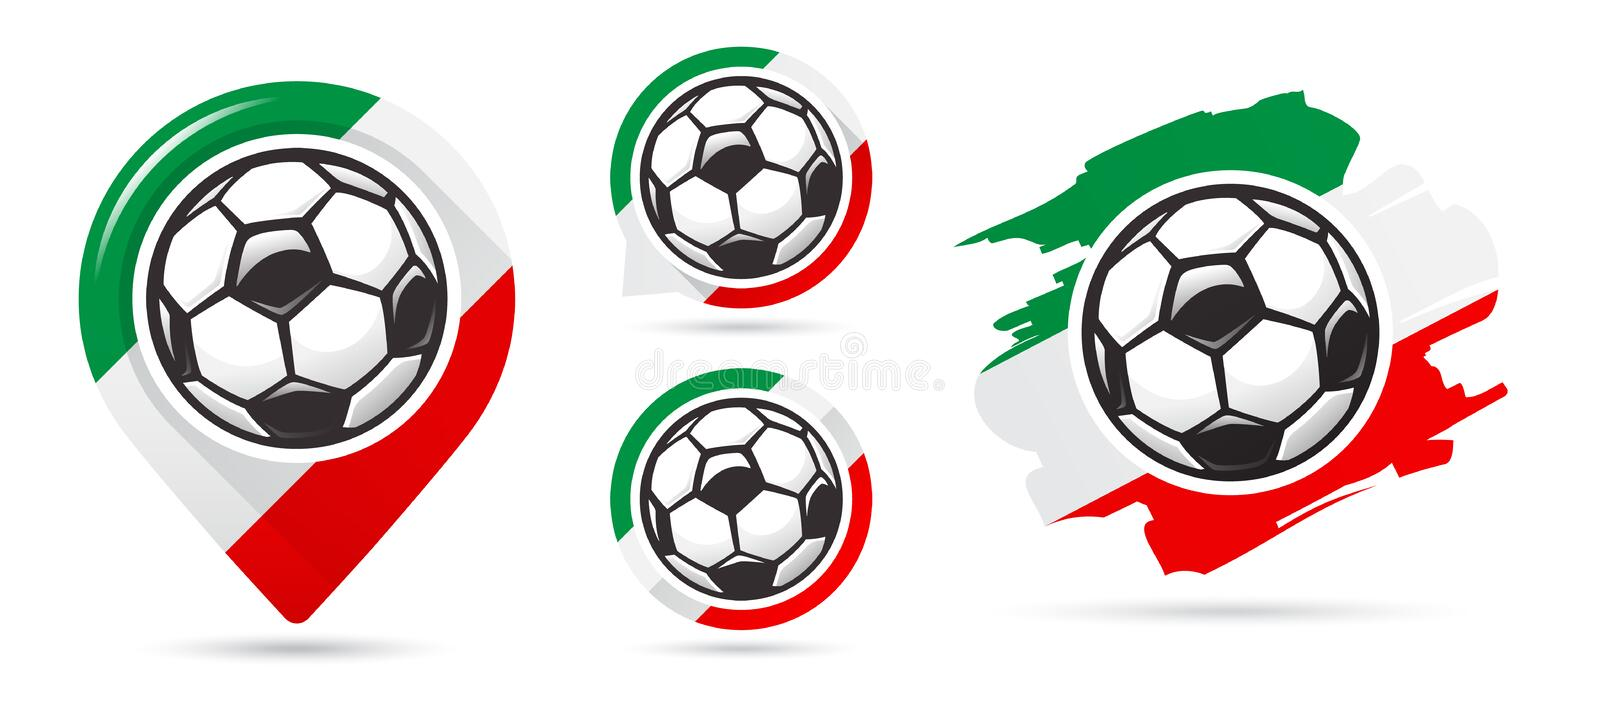 Italian football vector icons. Soccer goal. Set of football icons. Football map pointer. Football ball. Soccer ball vector sign. Scoring a goal vector illustration